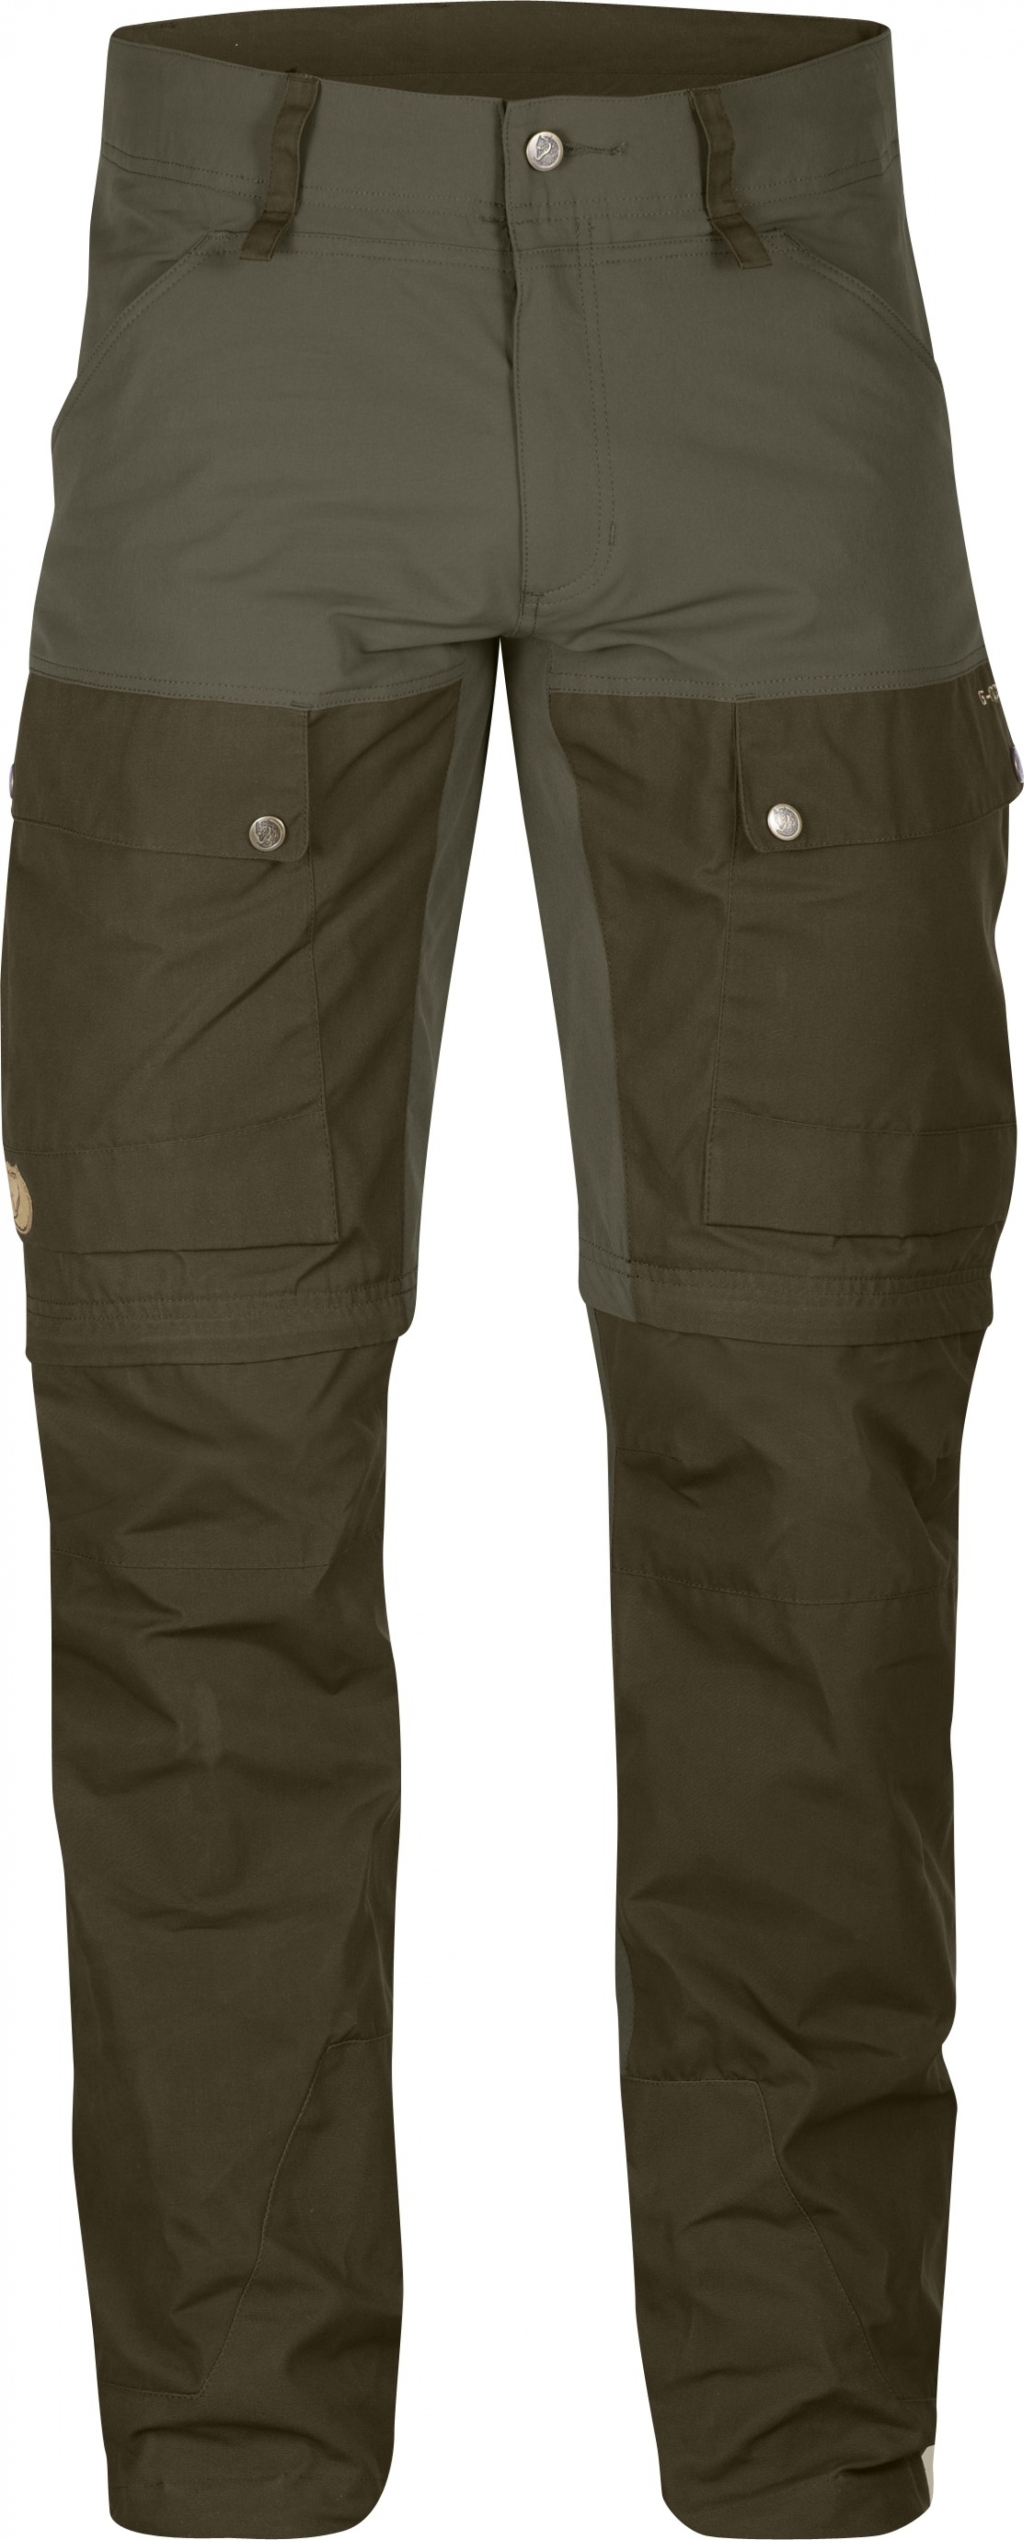 FjallRaven Keb Gaiter Trousers Regular Tarmac-30